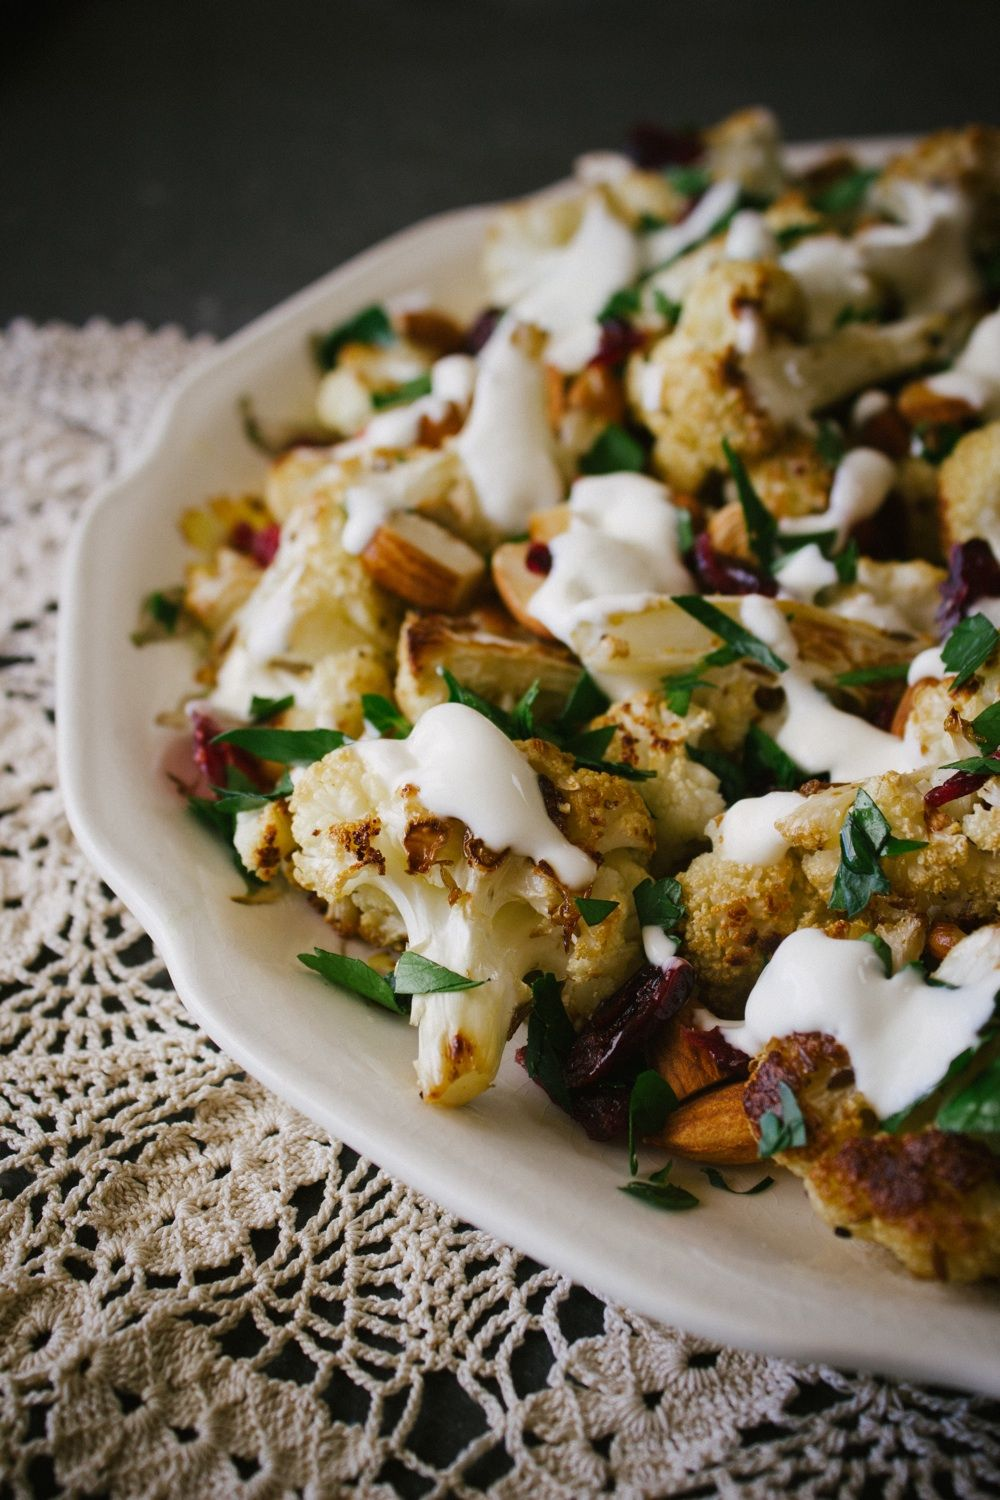 Roasted Cauliflower With Almonds, Cranberries and Yoghurt